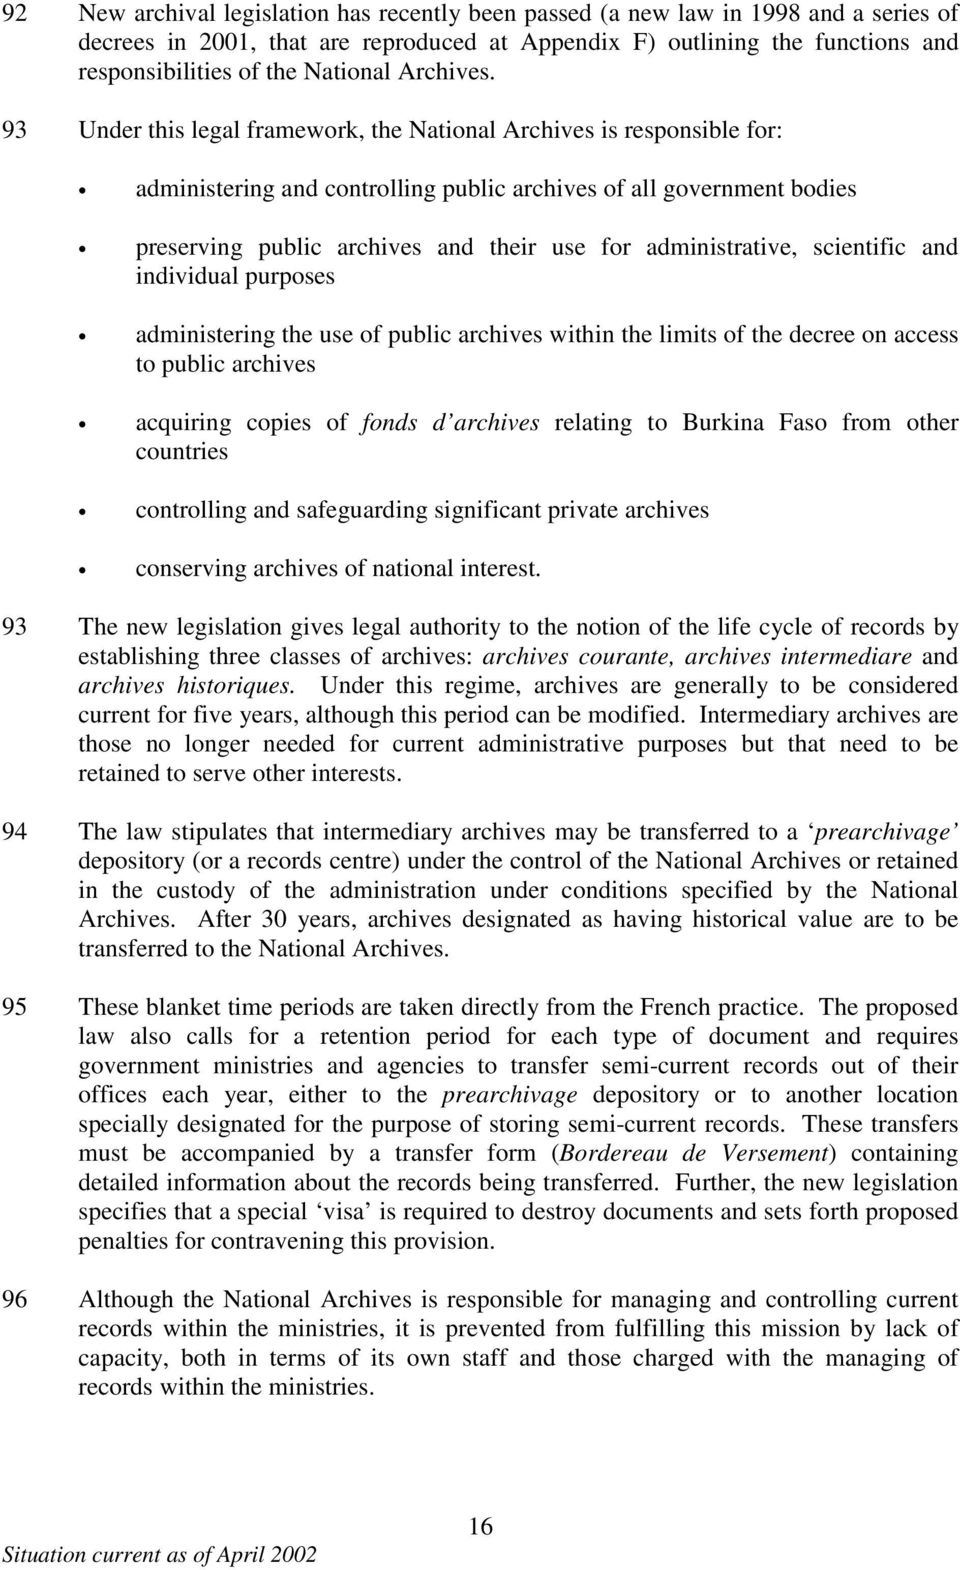 93 Under this legal framework, the National Archives is responsible for: administering and controlling public archives of all government bodies preserving public archives and their use for